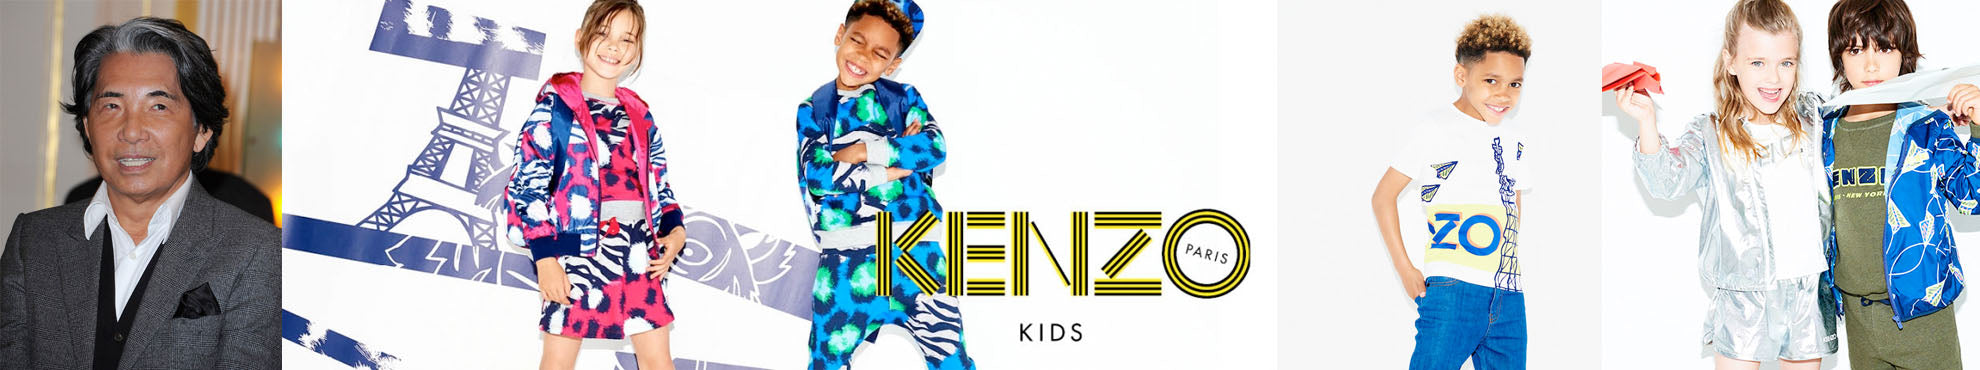 KENZO Kids - designer children's clothing online store outlet and boutique